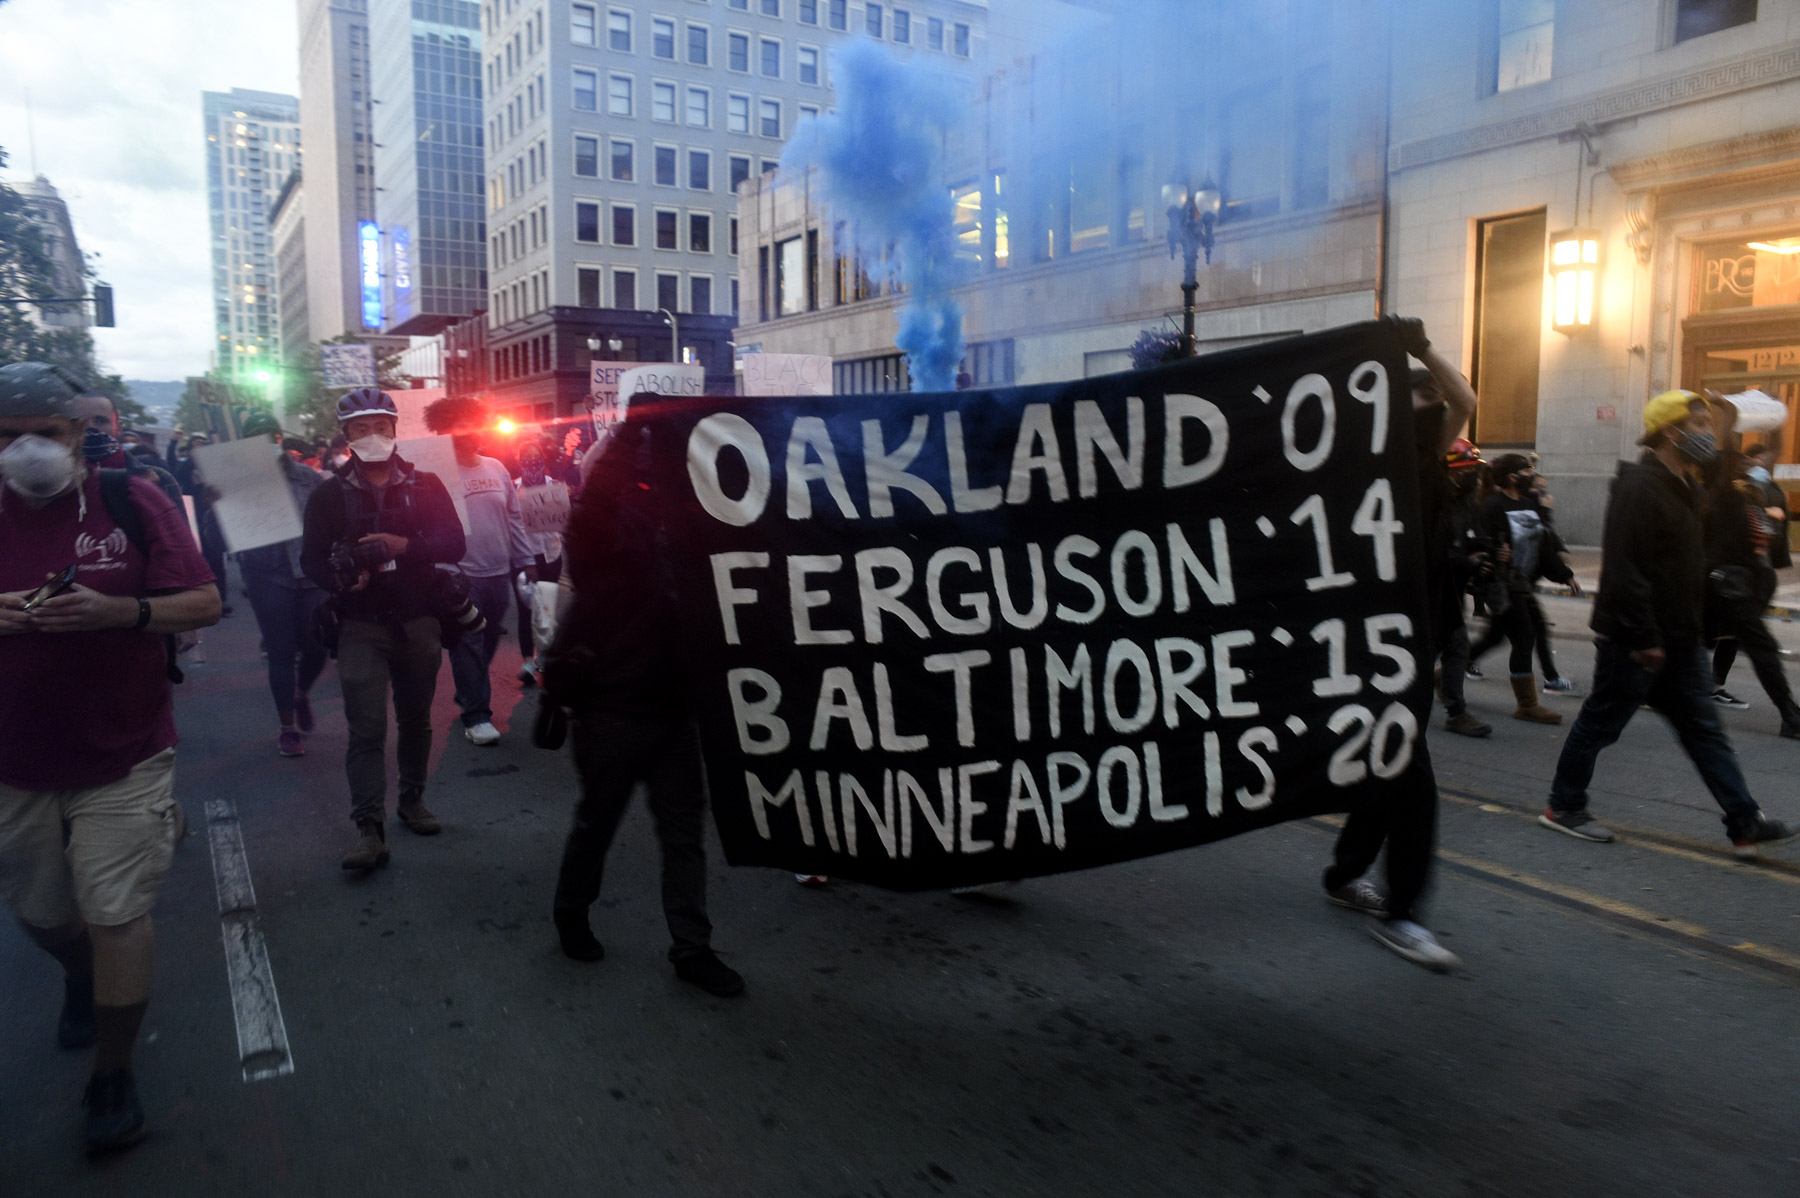 29 May 2020: Protesters showed up in downtown Oakland, California, to show solidarity with countrywide protests following the death of George Floyd in Minneapolis, Minnesota. (Photograph by Neal Waters/ Anadolu Agency via Getty Images)